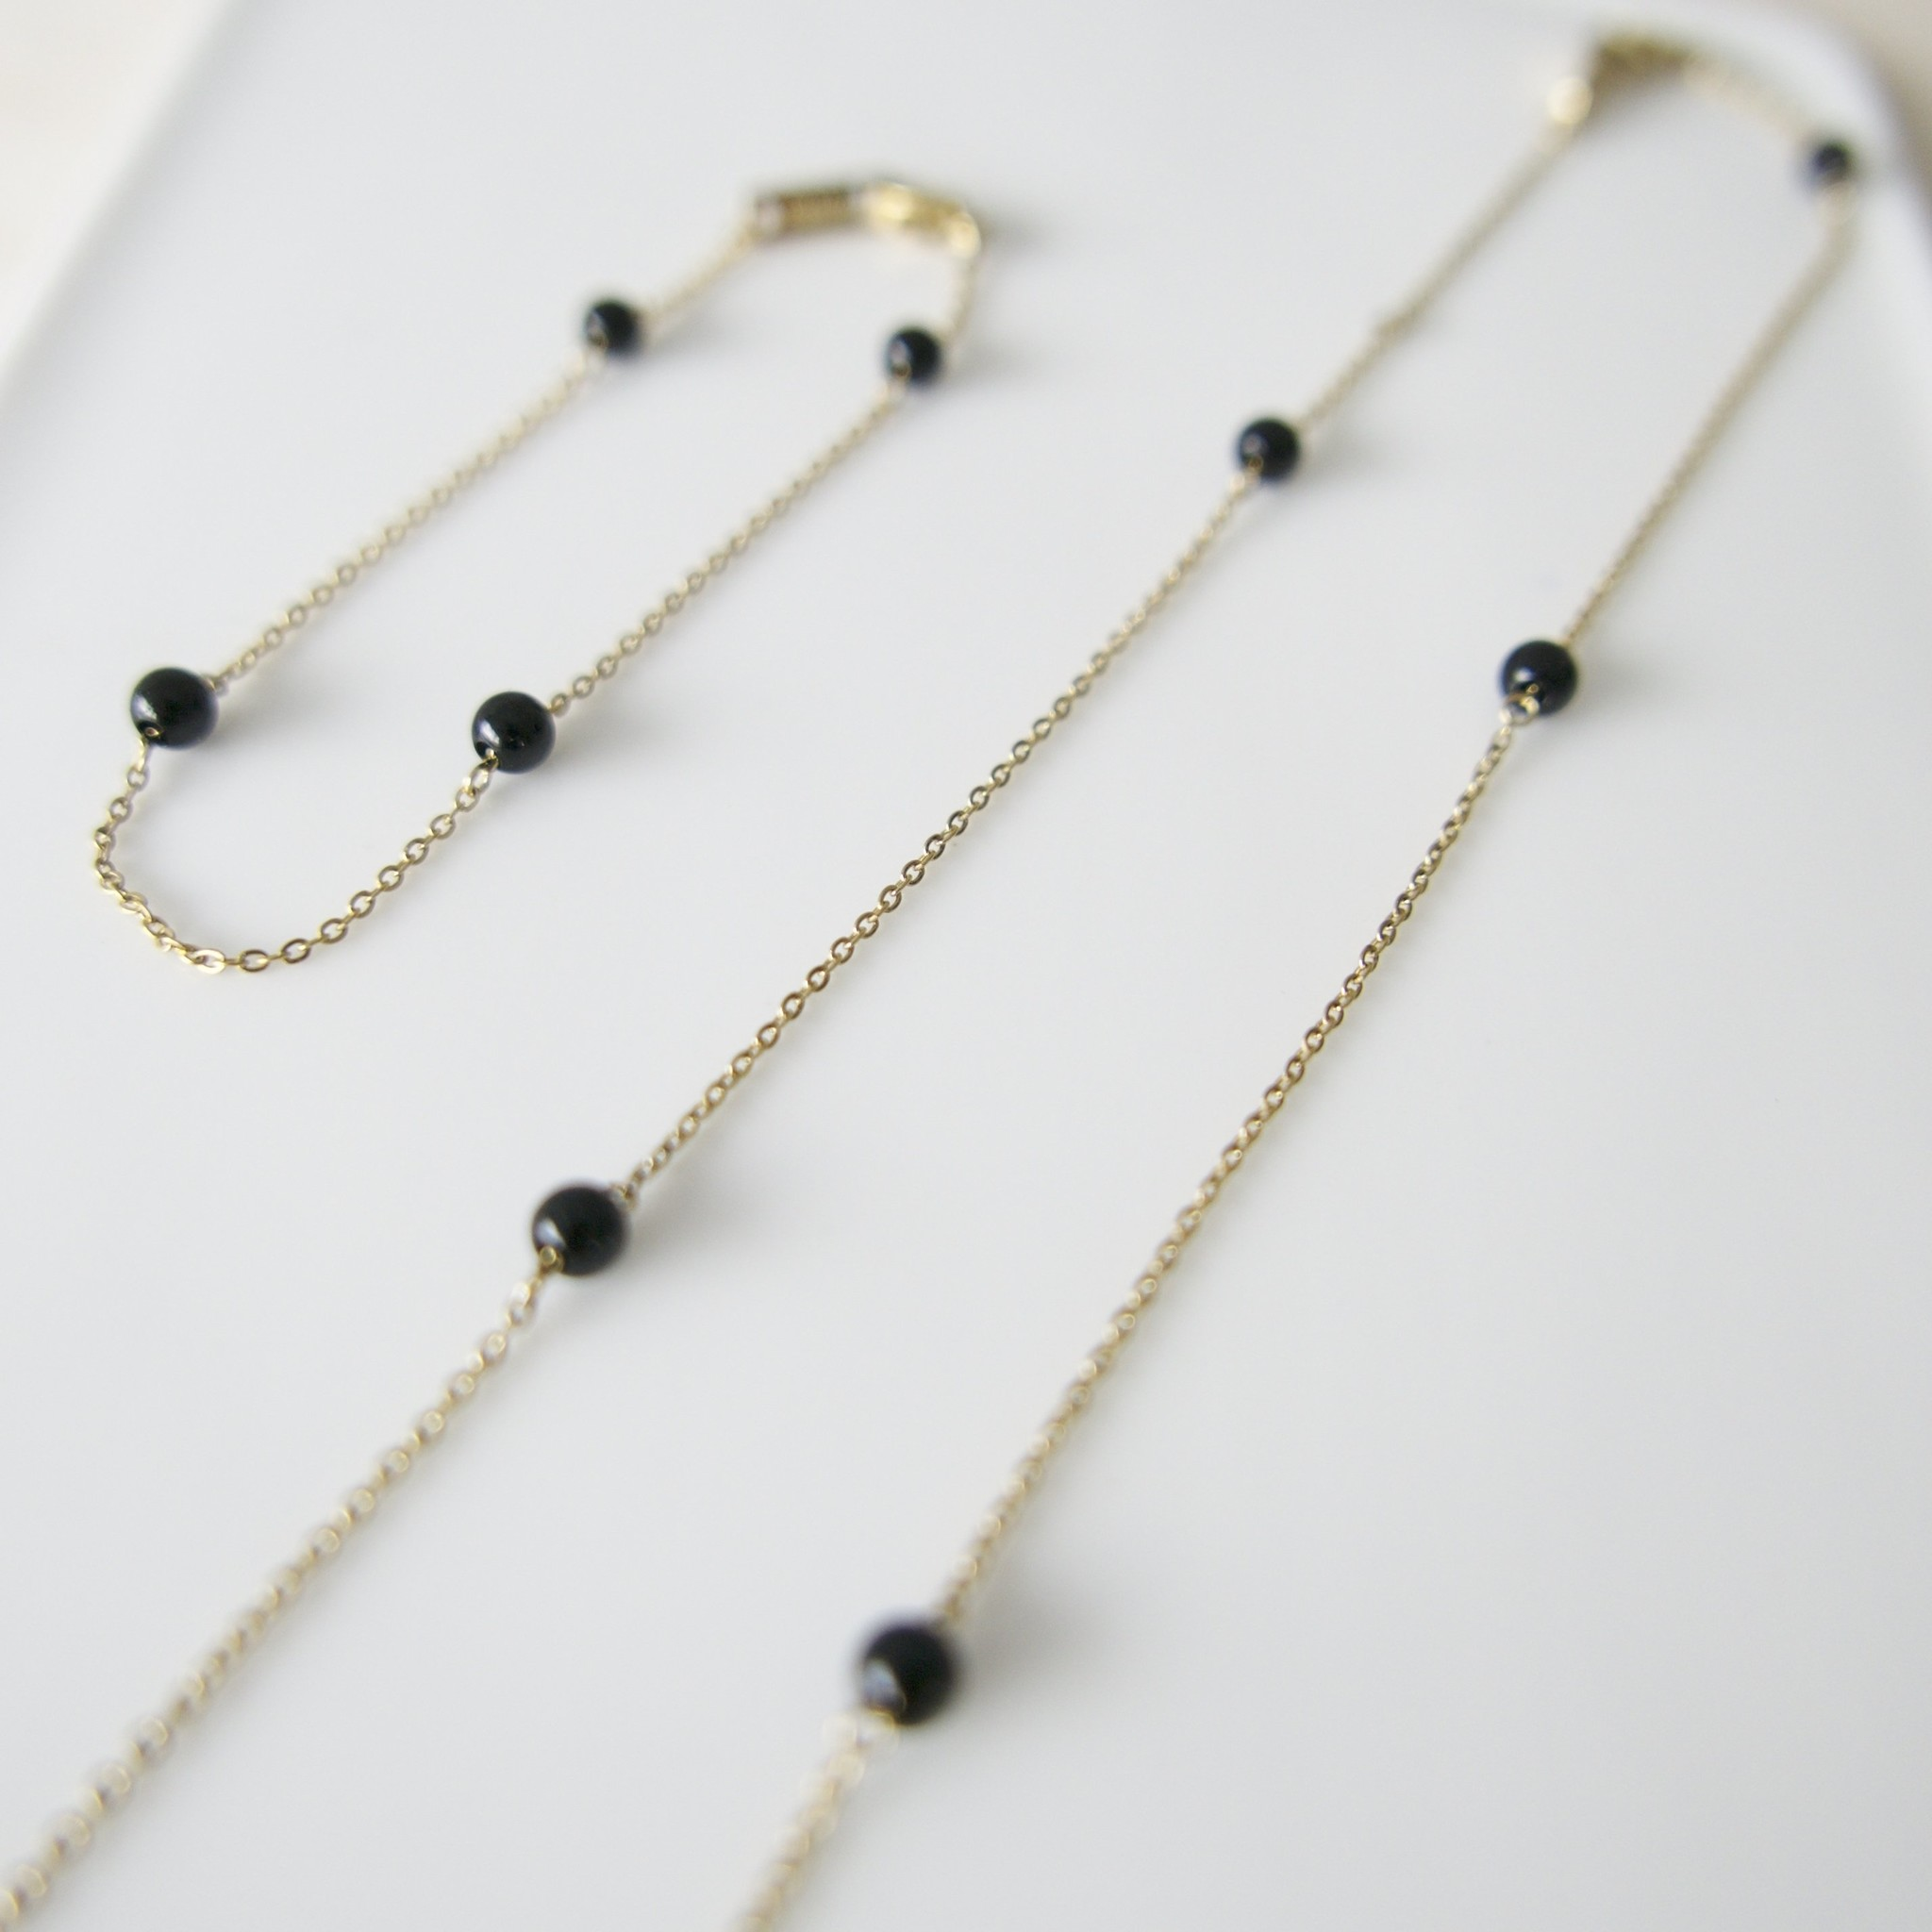 Energy Muse Necklace - Gold with Black Onyx-4